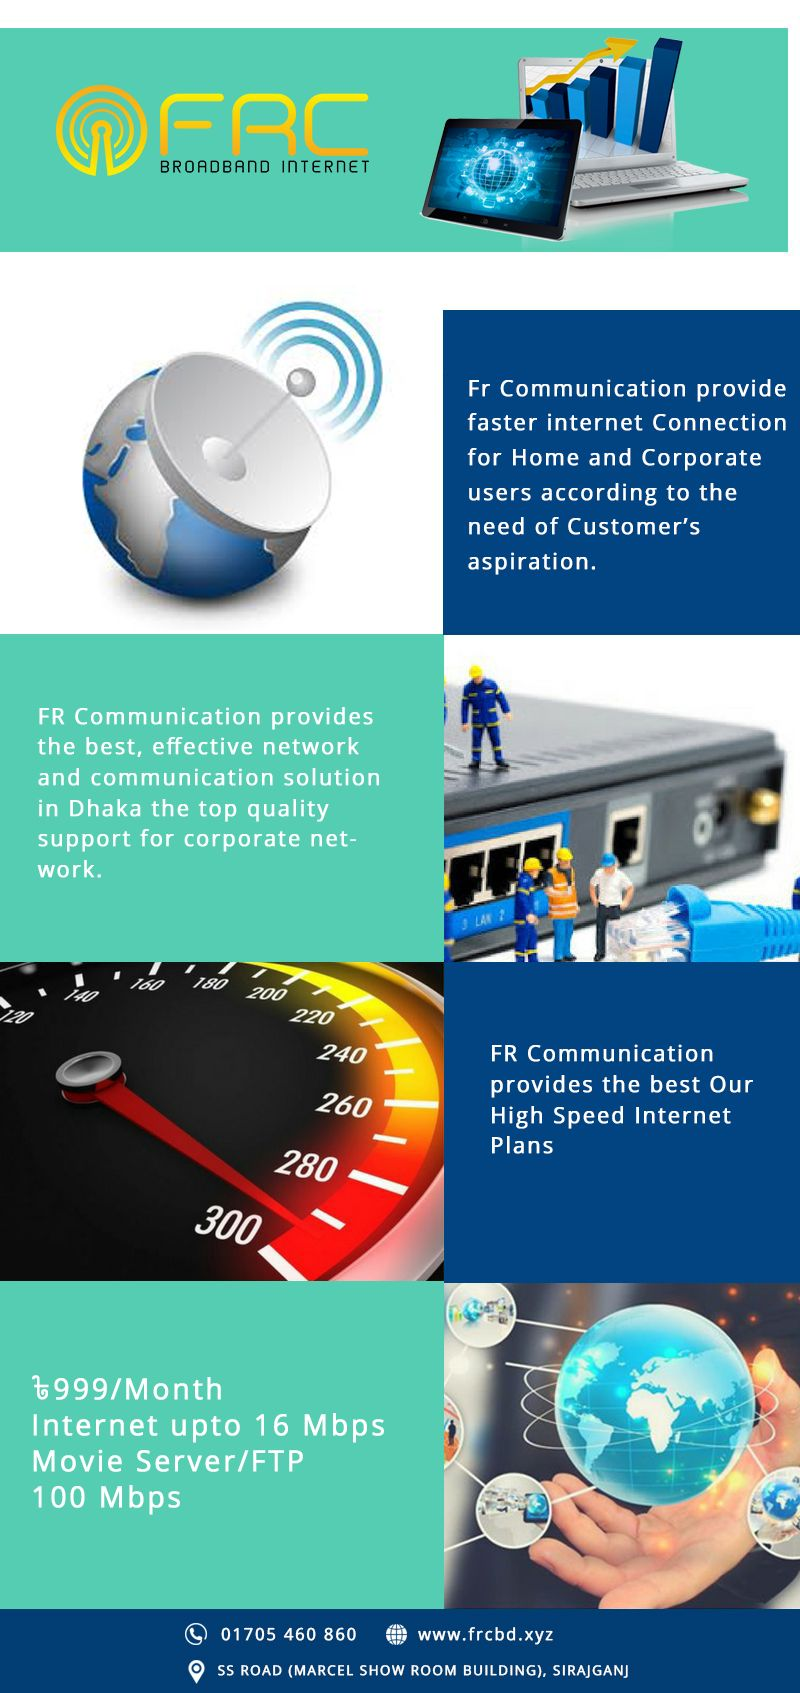 FR Communication provides the best, effective network and